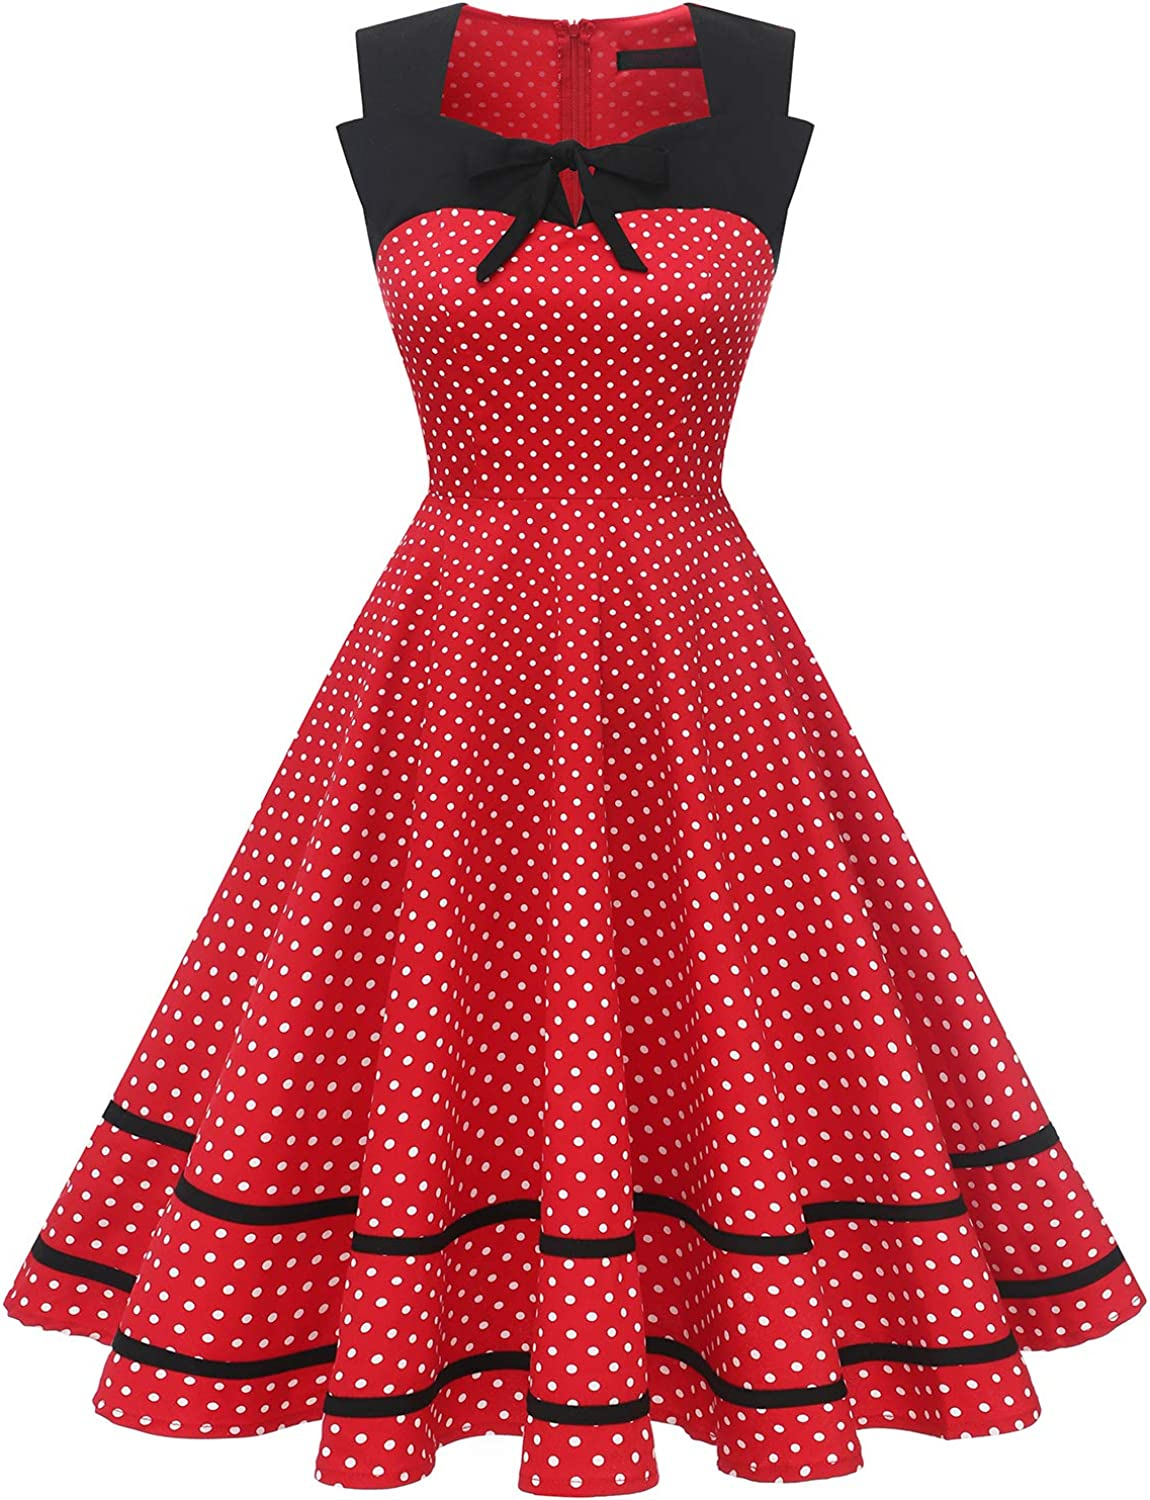 Polka Dot Dresses: 20s, 30s, 40s, 50s, 60s Womens 50s Vintage Retro Pinup Style Cocktail Party Swing Wedding Dresses $29.99 AT vintagedancer.com